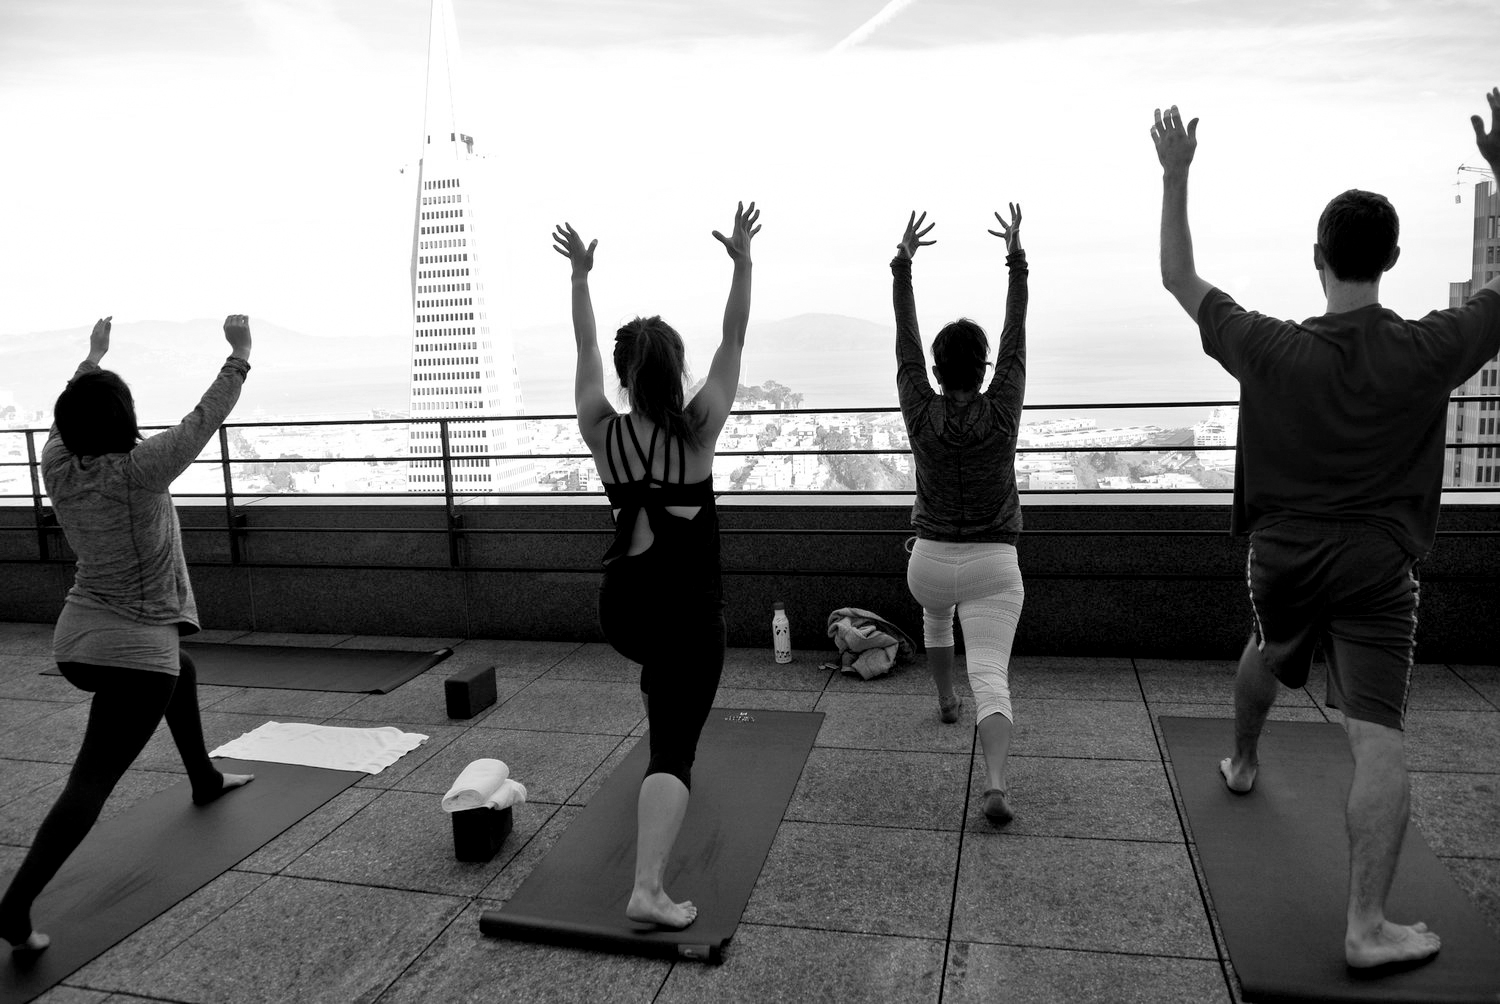 Rooftop yoga in the now utterly unaffordable San Francisco